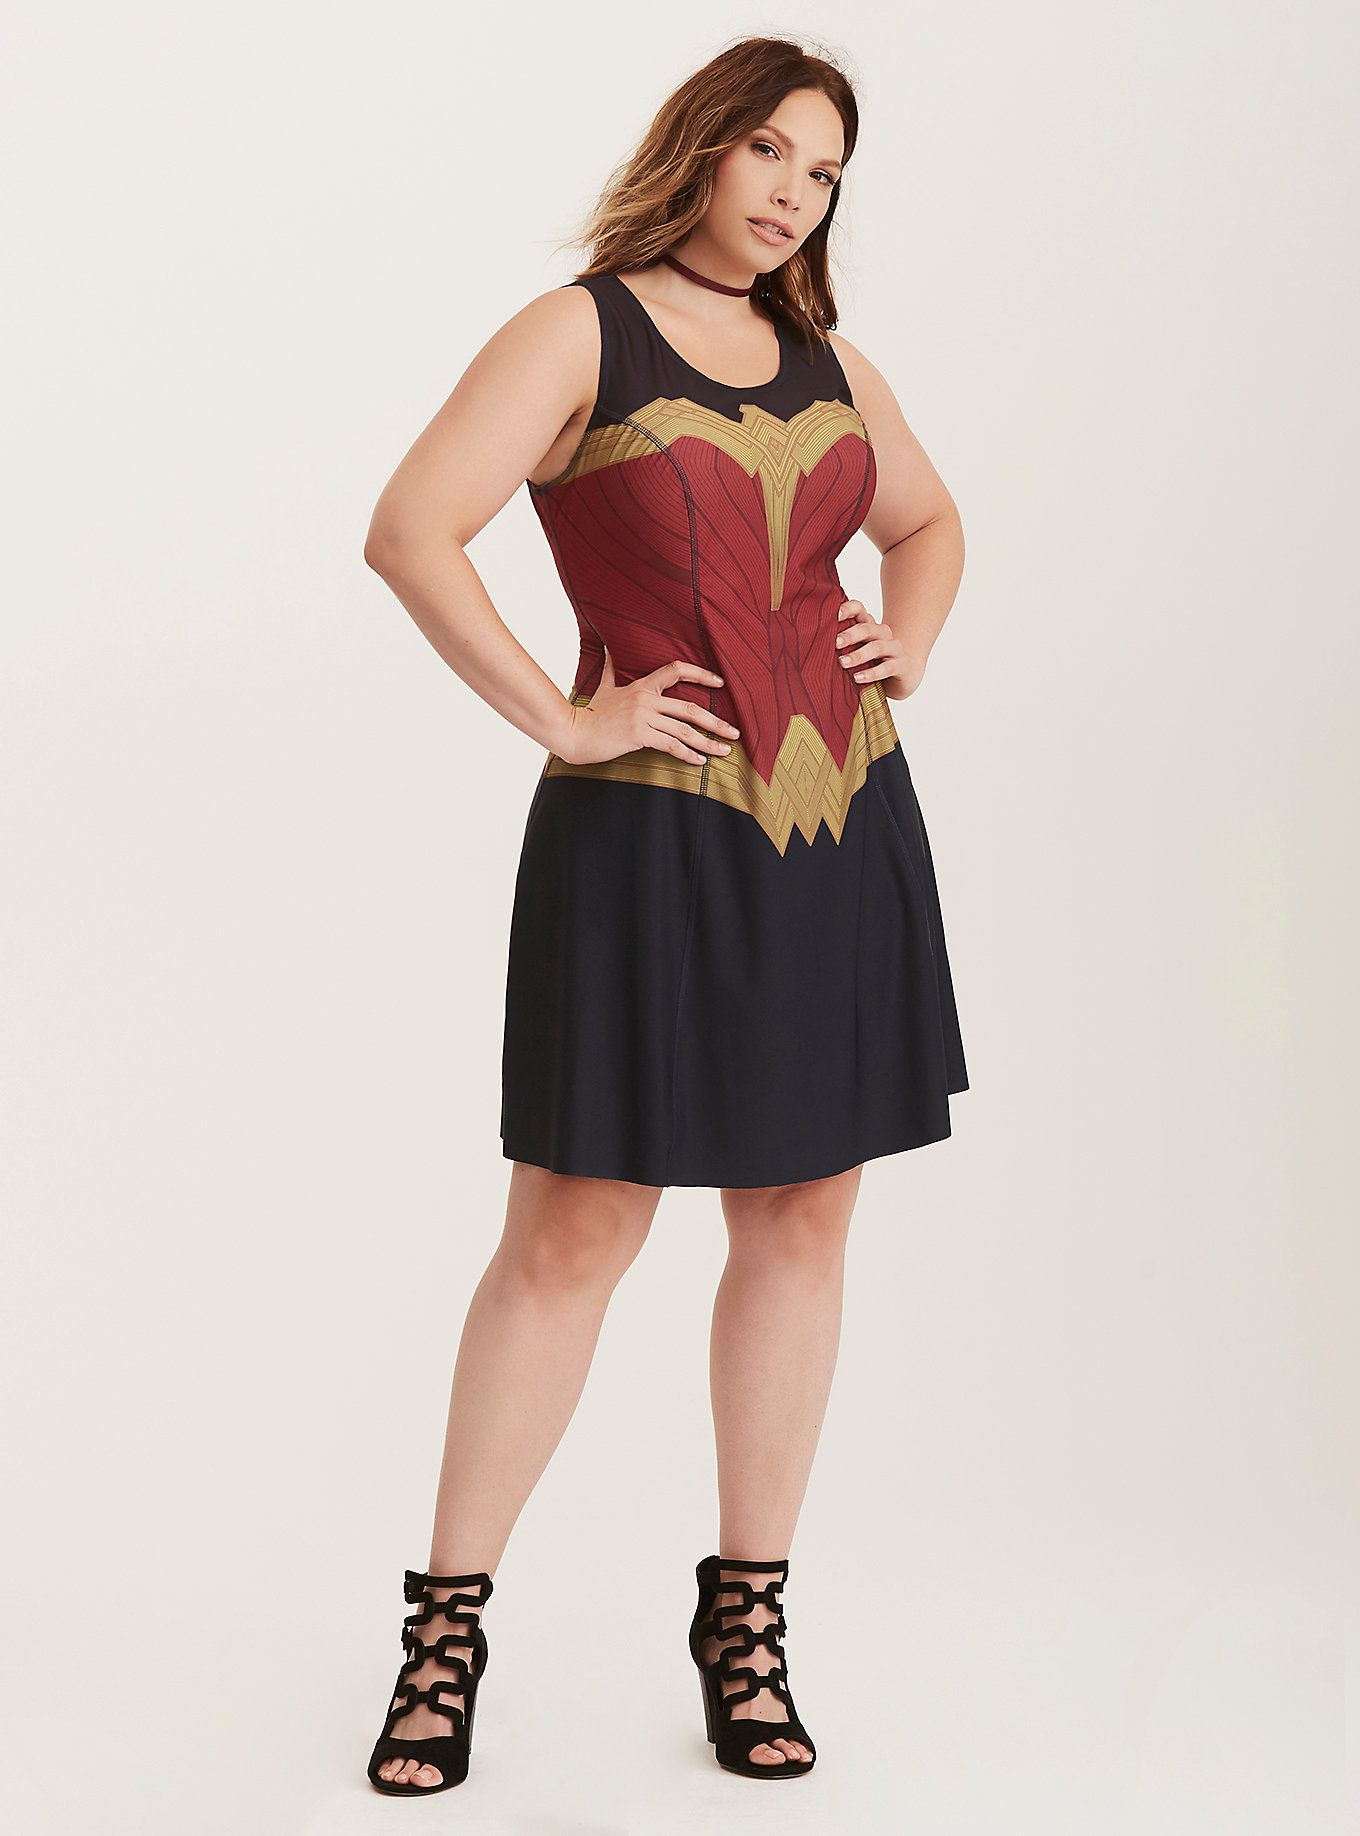 Her Universe Wonder Woman Reversible Skater Dress Torrid